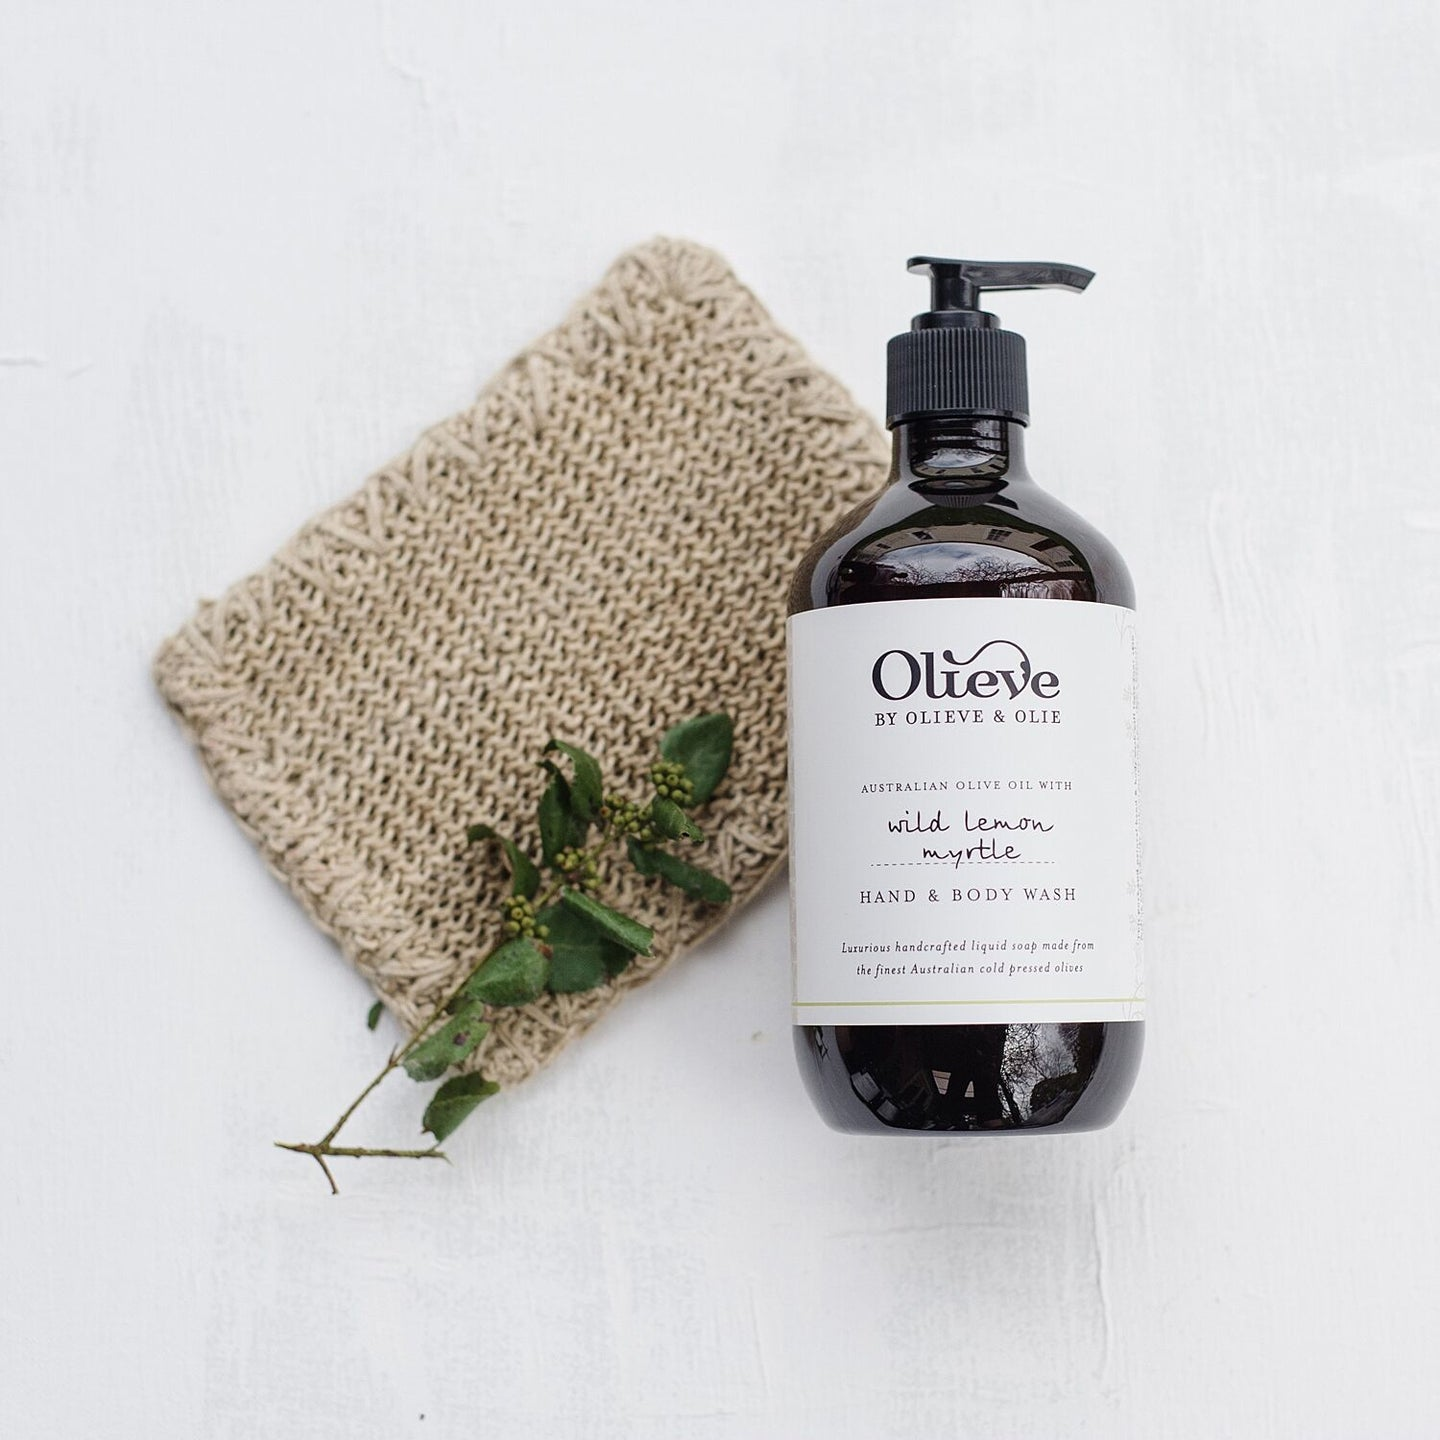 Olieve and Olie wild lemon myrtle hand and body wash, all natural and organic ingredients.